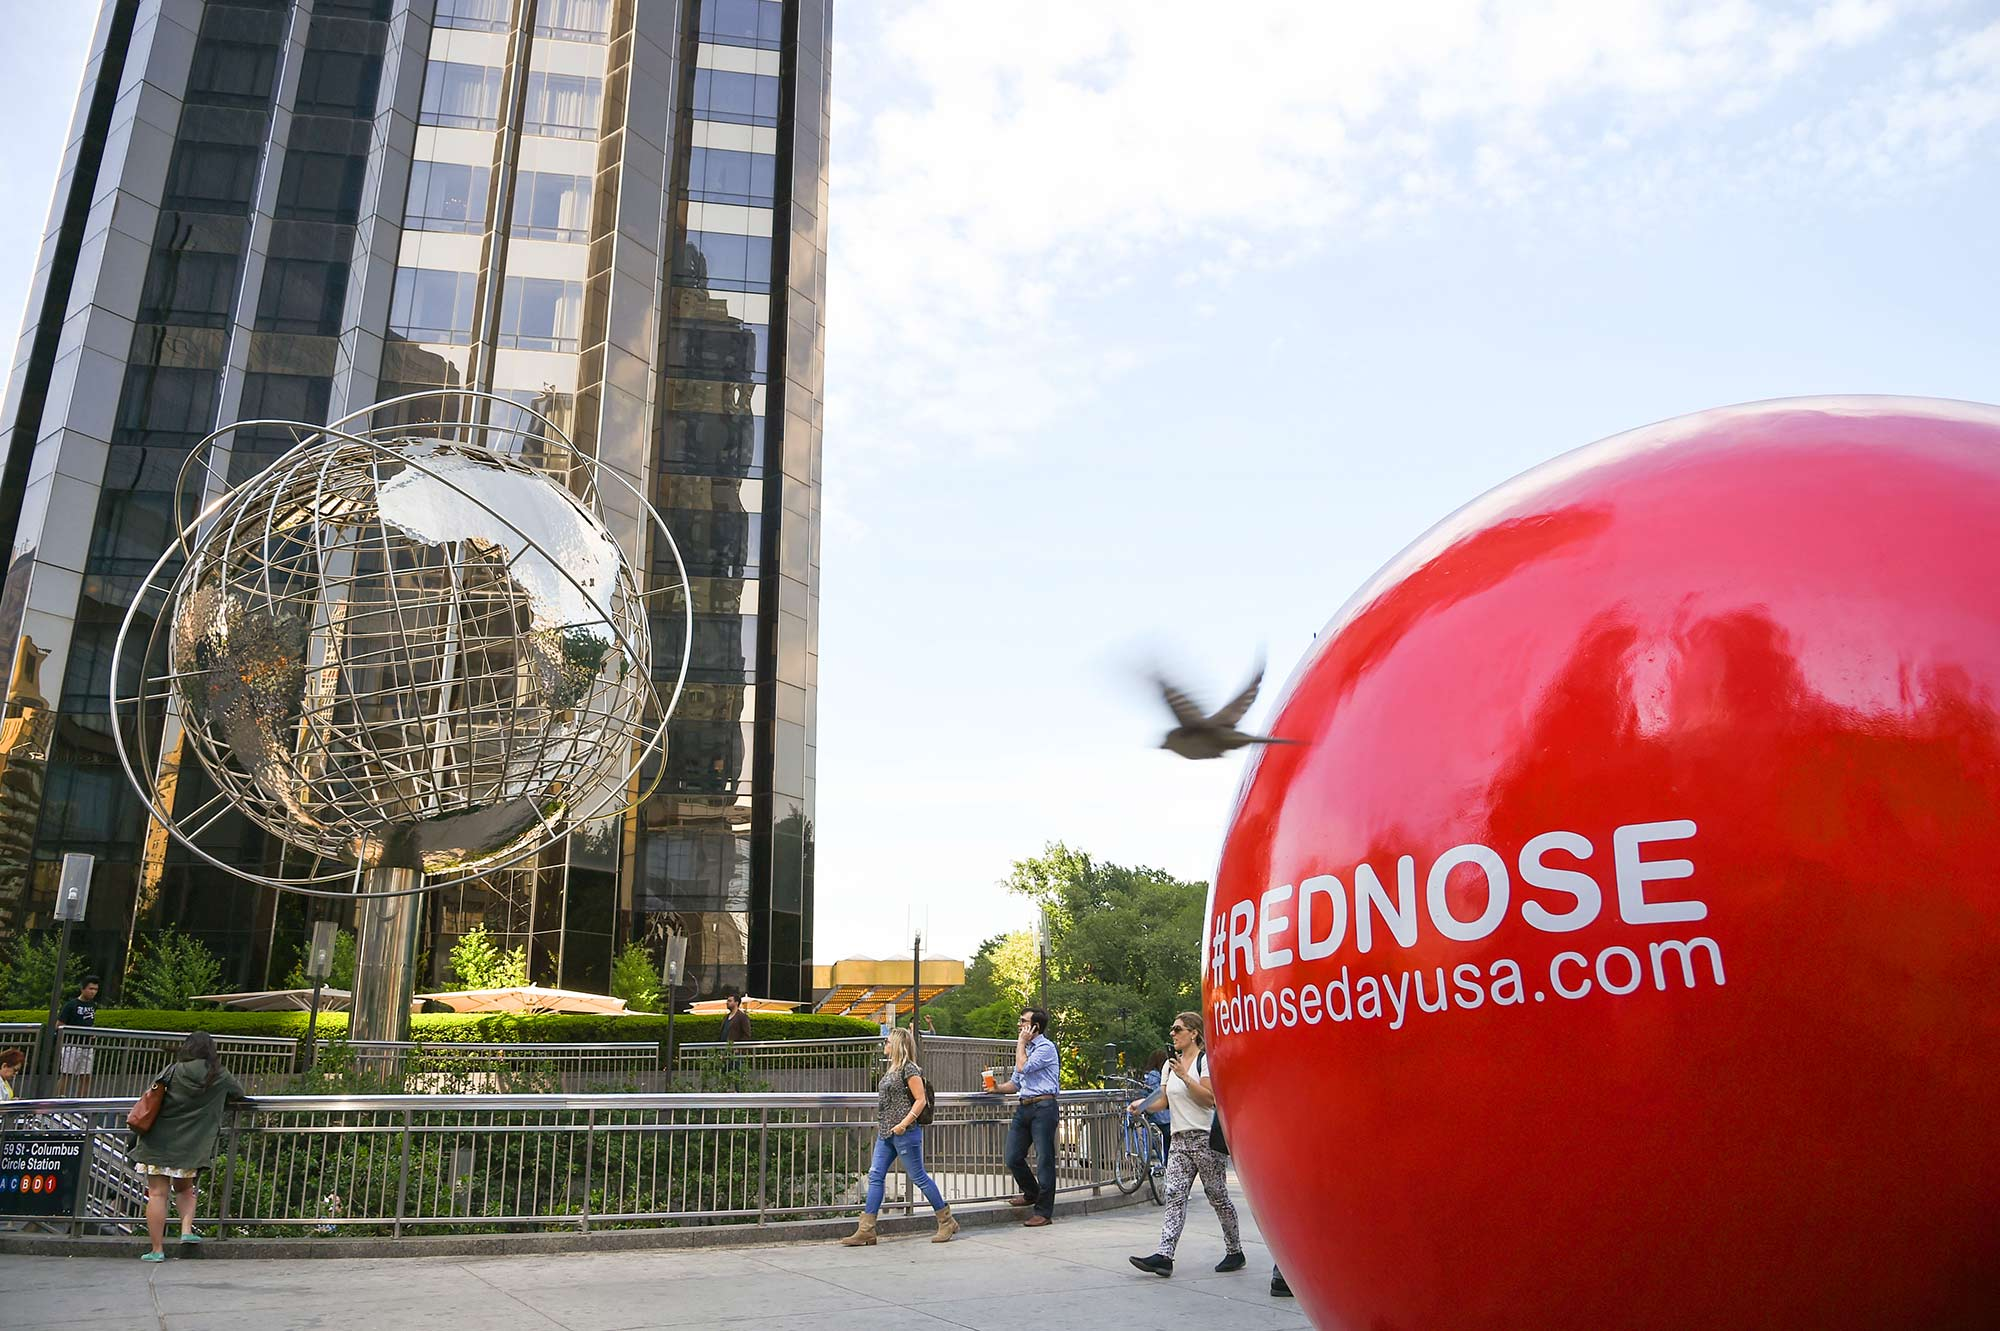 One of 5 larger-than-life Red Nose statues sits proudly in New York City's Columbus Circle.